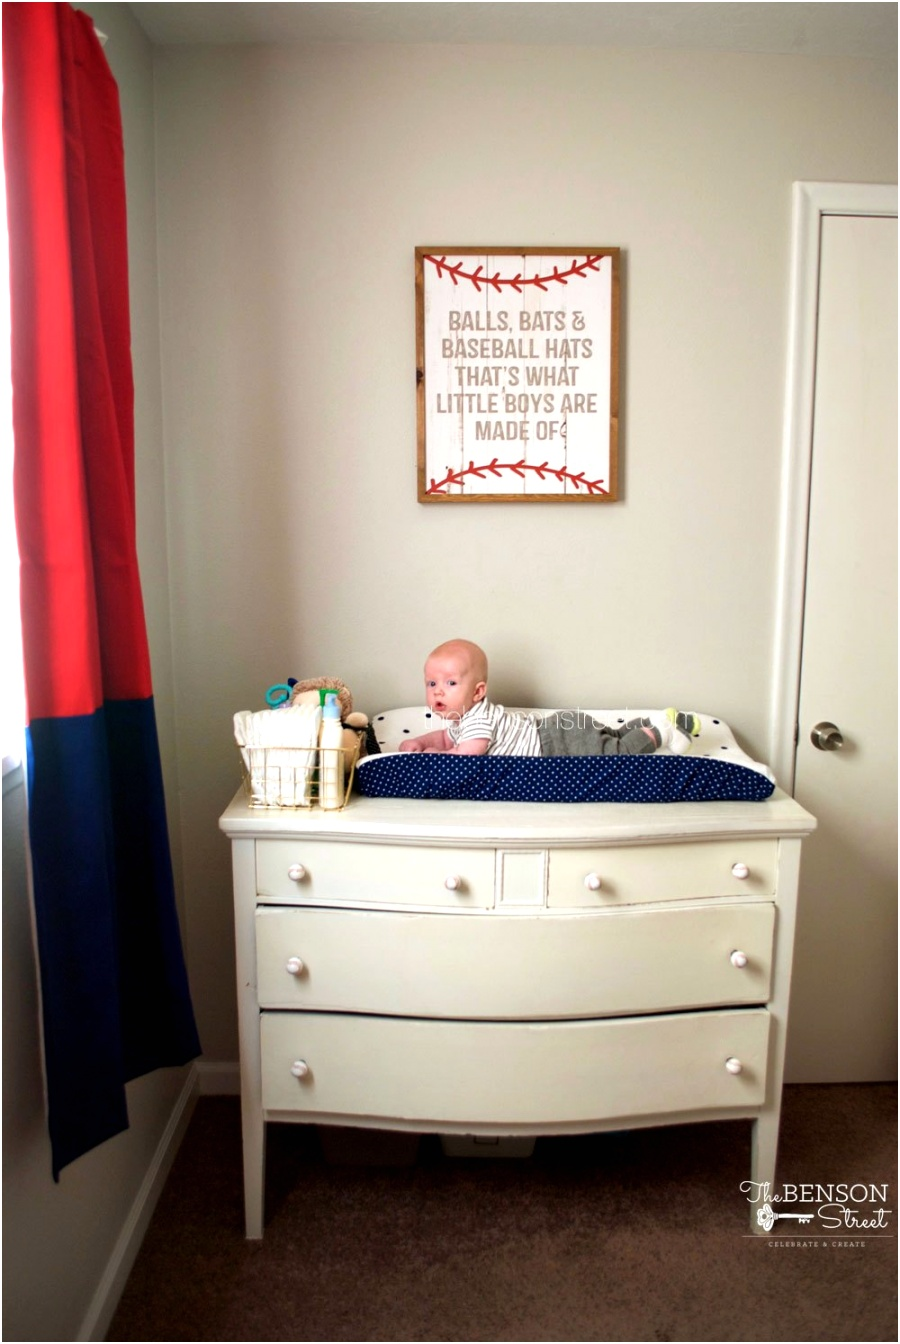 Baseball and sports themed nursery idea at thebensonstreet